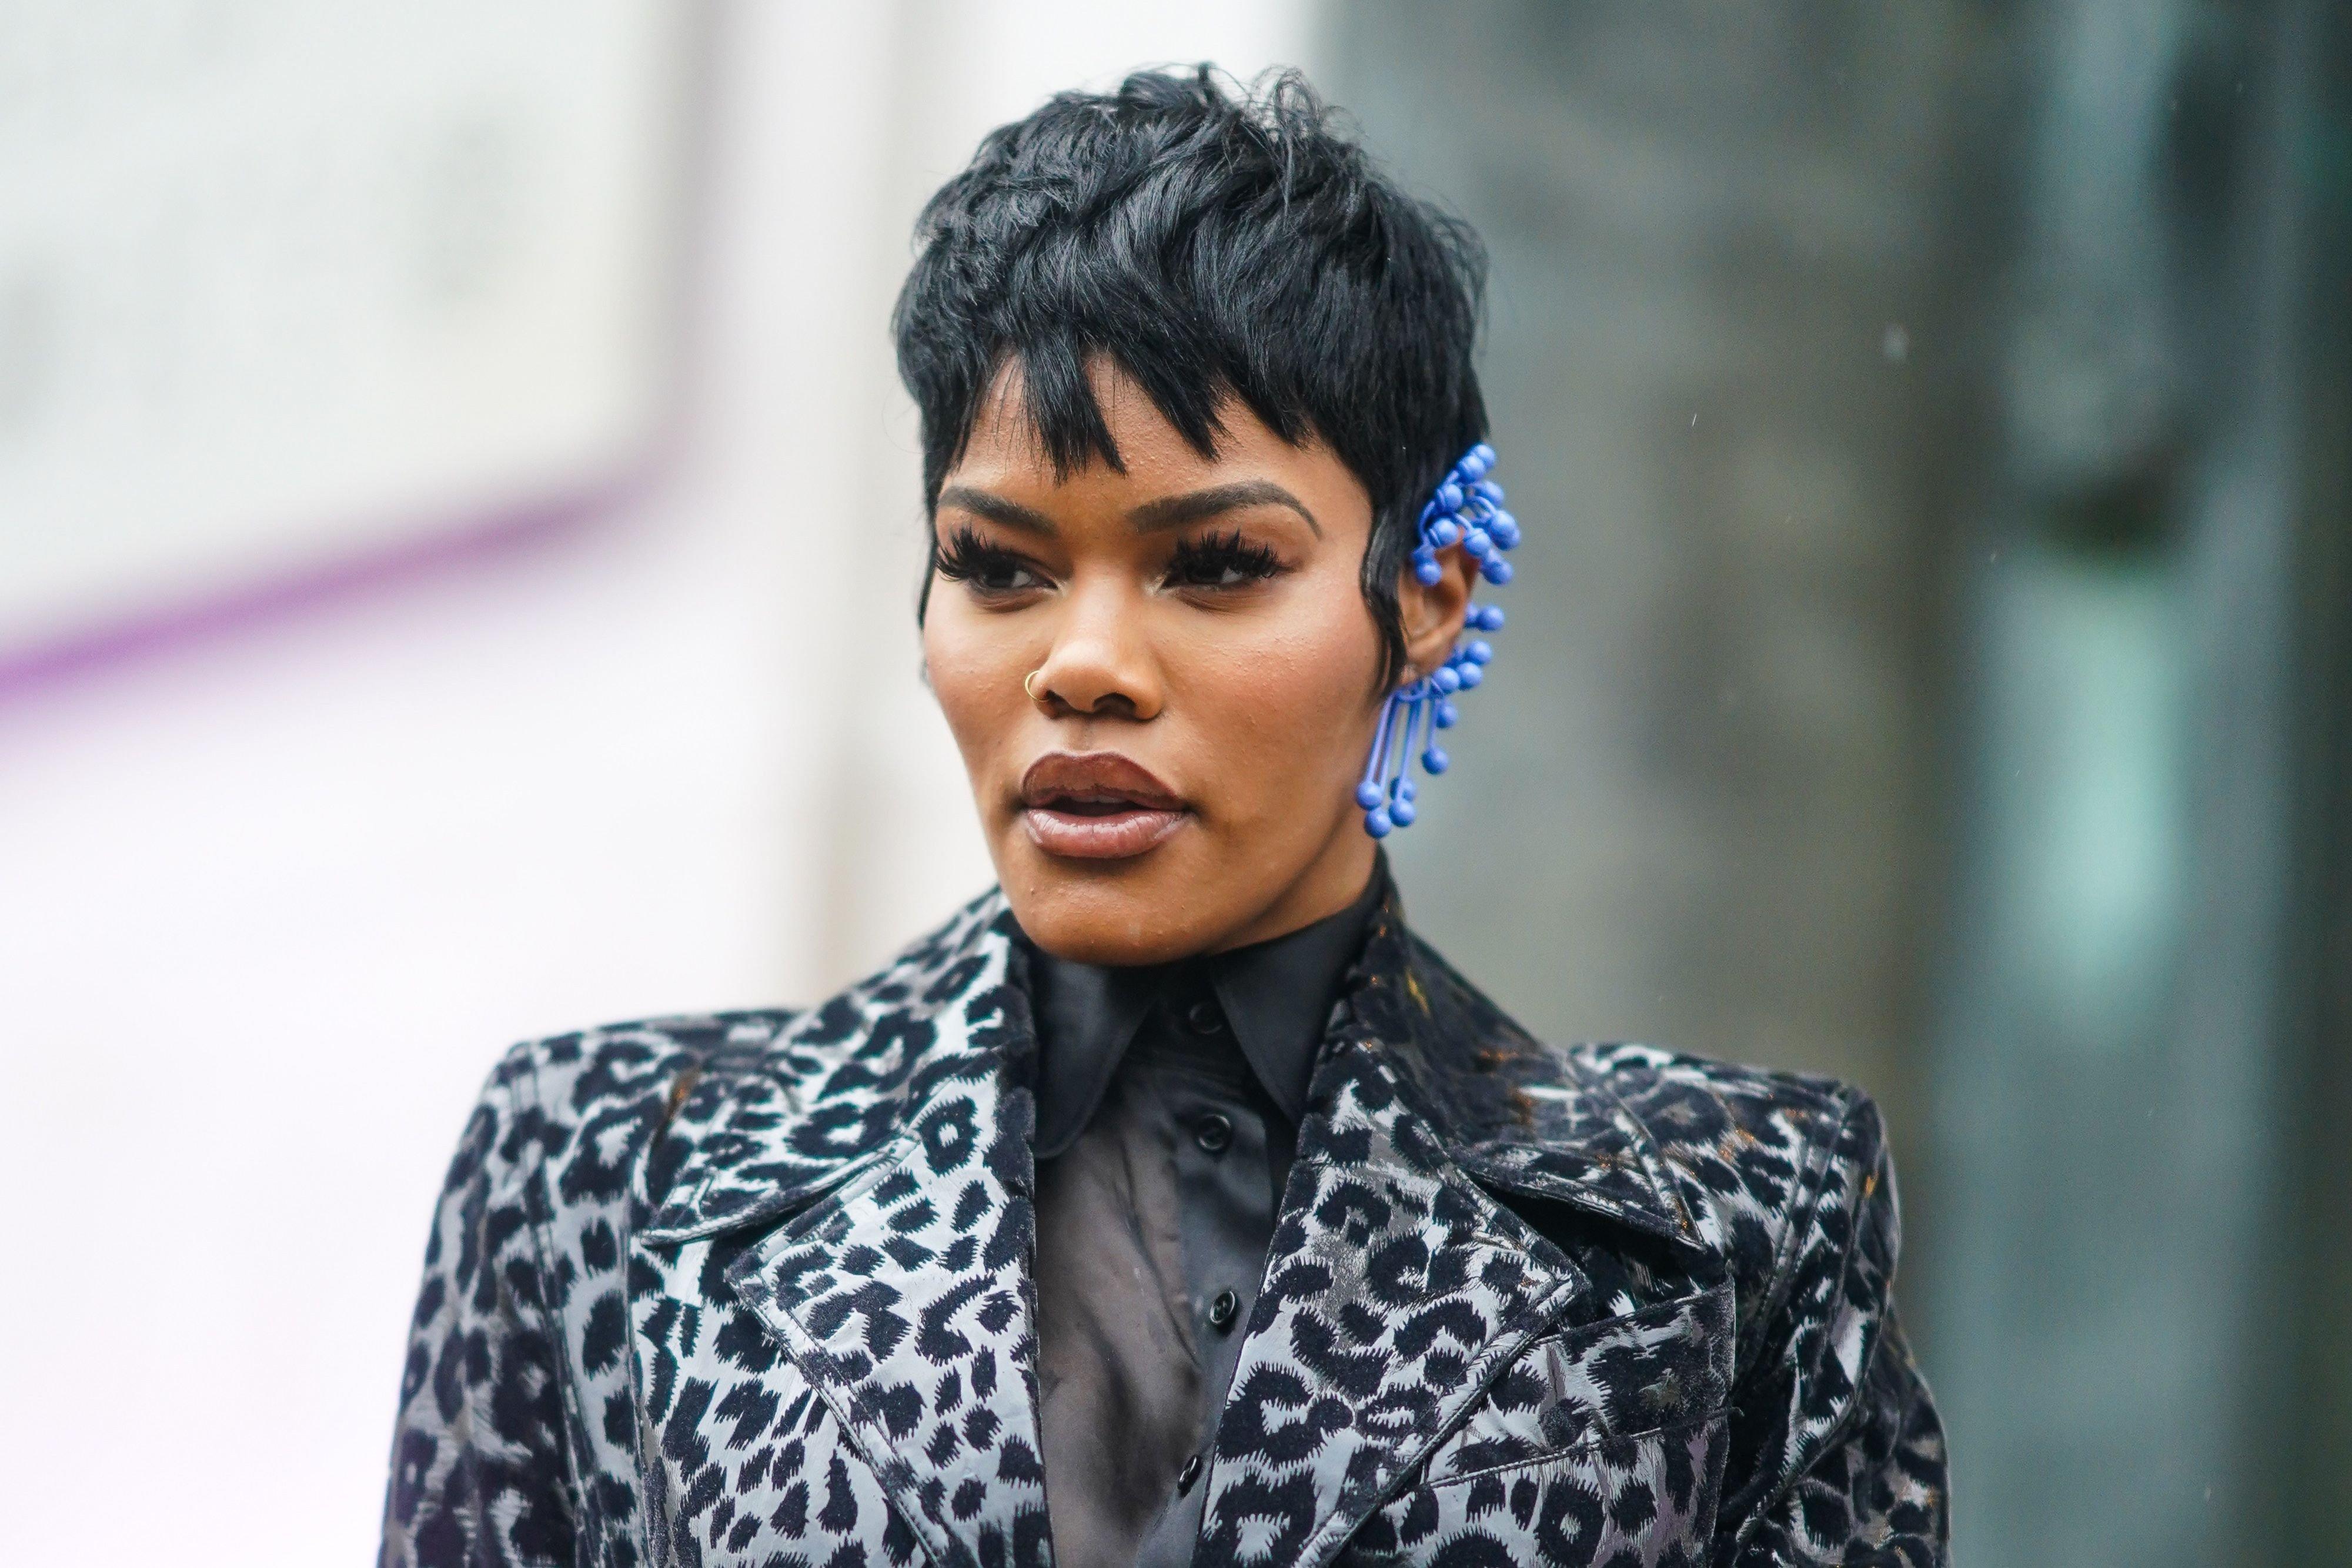 Teyana Taylor wears a black shirt, a long black and gray leopard print trench coat and a blue earring outside Mugler at Paris Fashion Week on February 26, 2020 | Photo: Getty Images